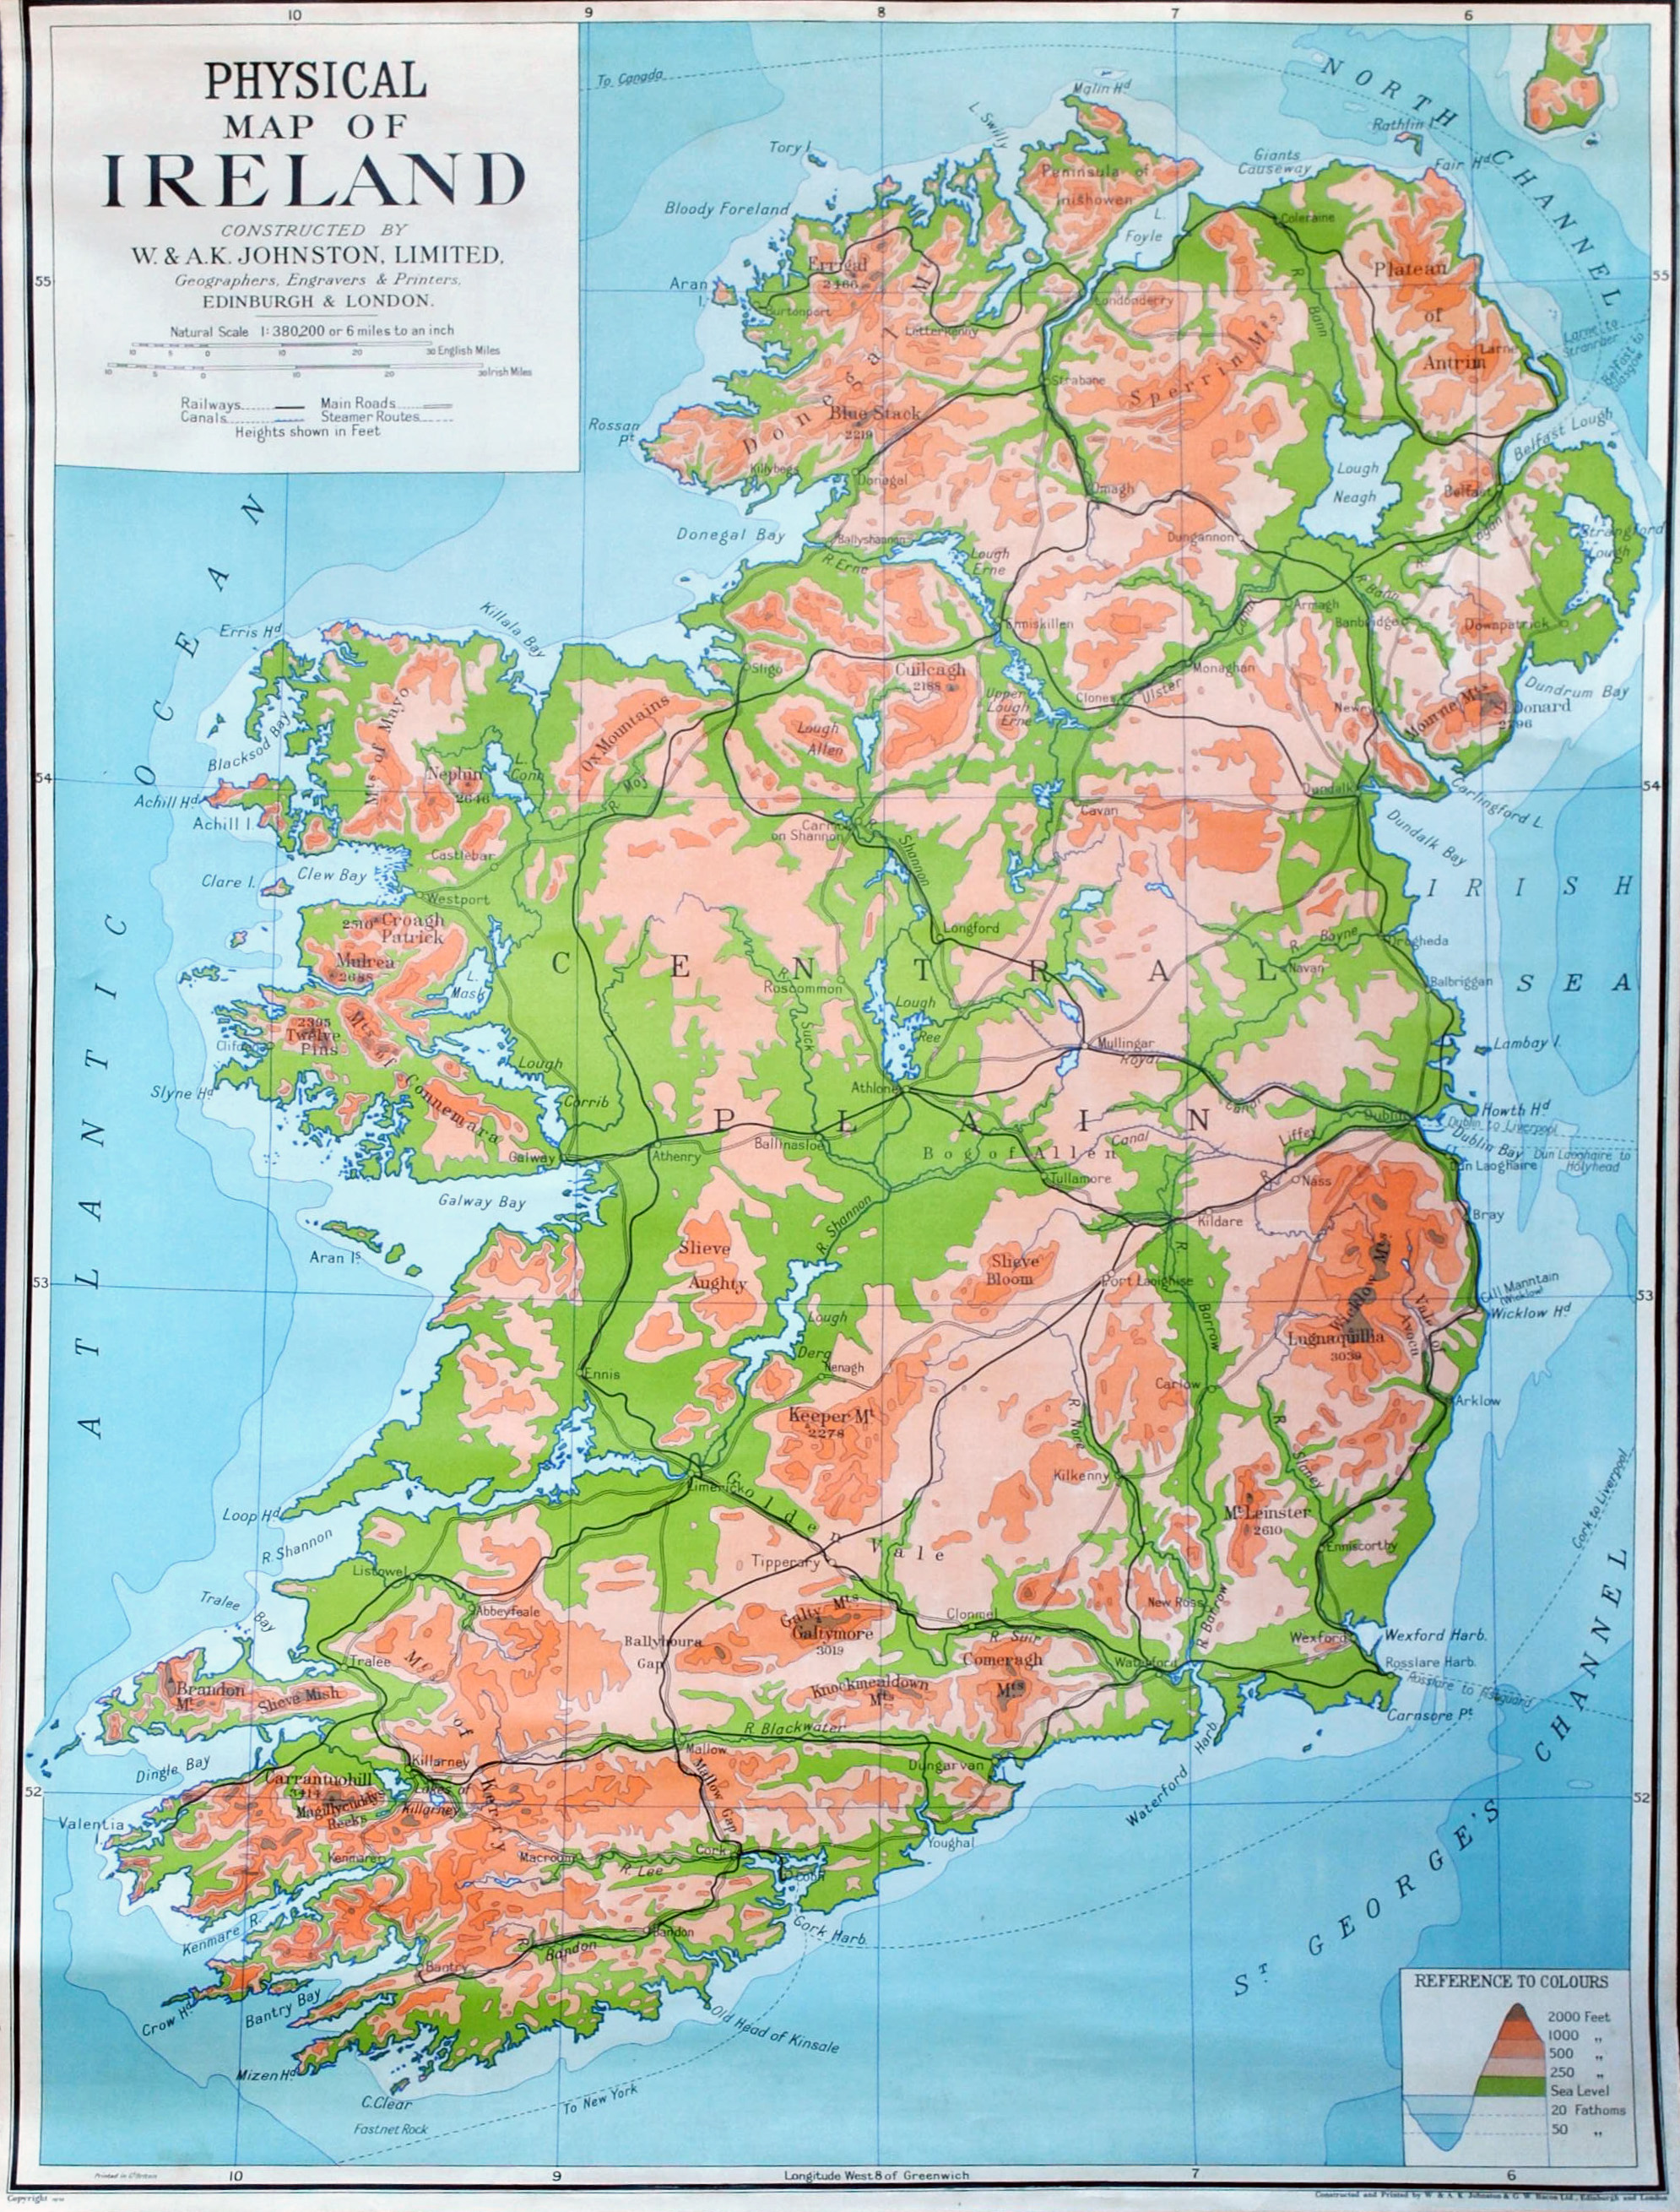 Large Detailed Physical Map Of Ireland Ireland Europe - A physical map